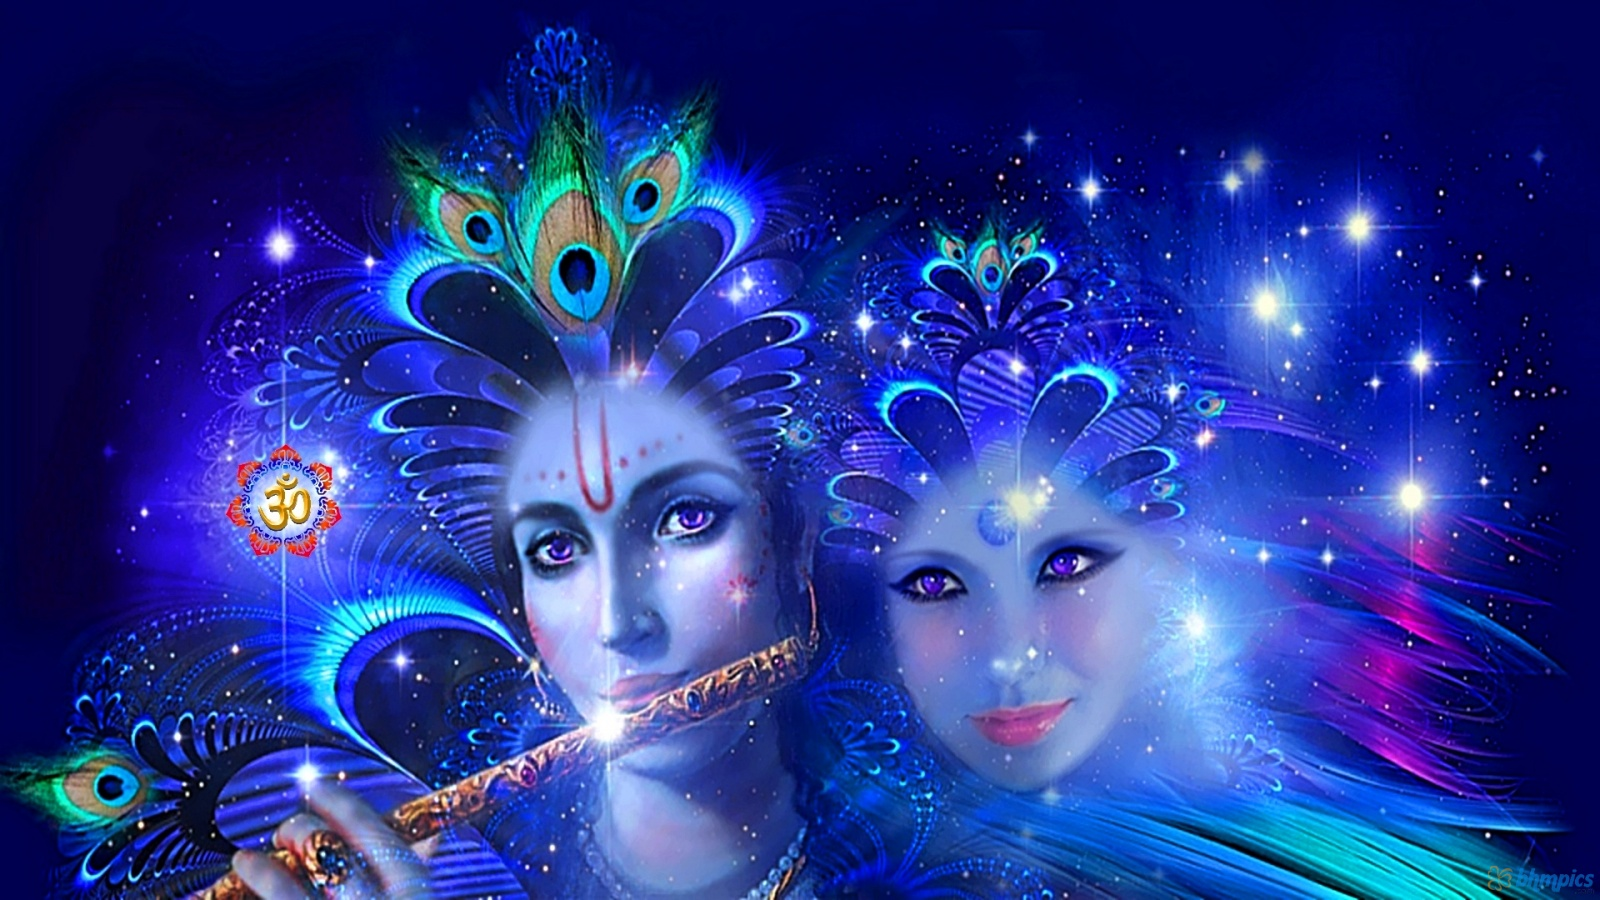 3d hd radha krishna wallpaper desktop hd wallpaper - Anime images download ...